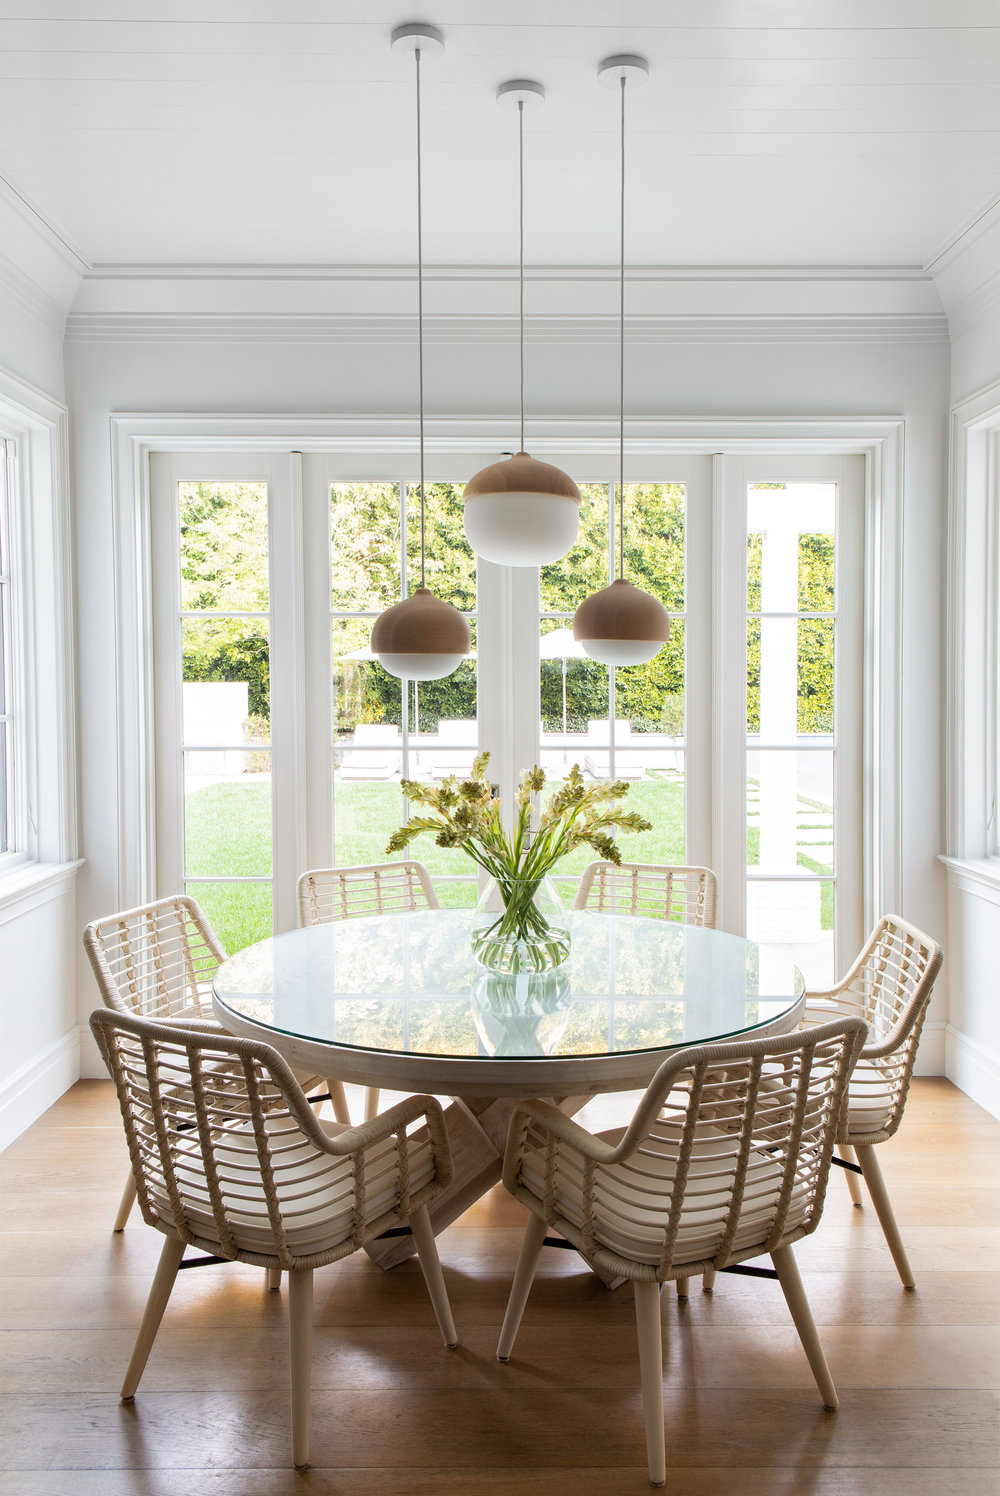 Beautiful breakfast nook / kitchen dining area with woven chairs and modern pendant lights Chango & co